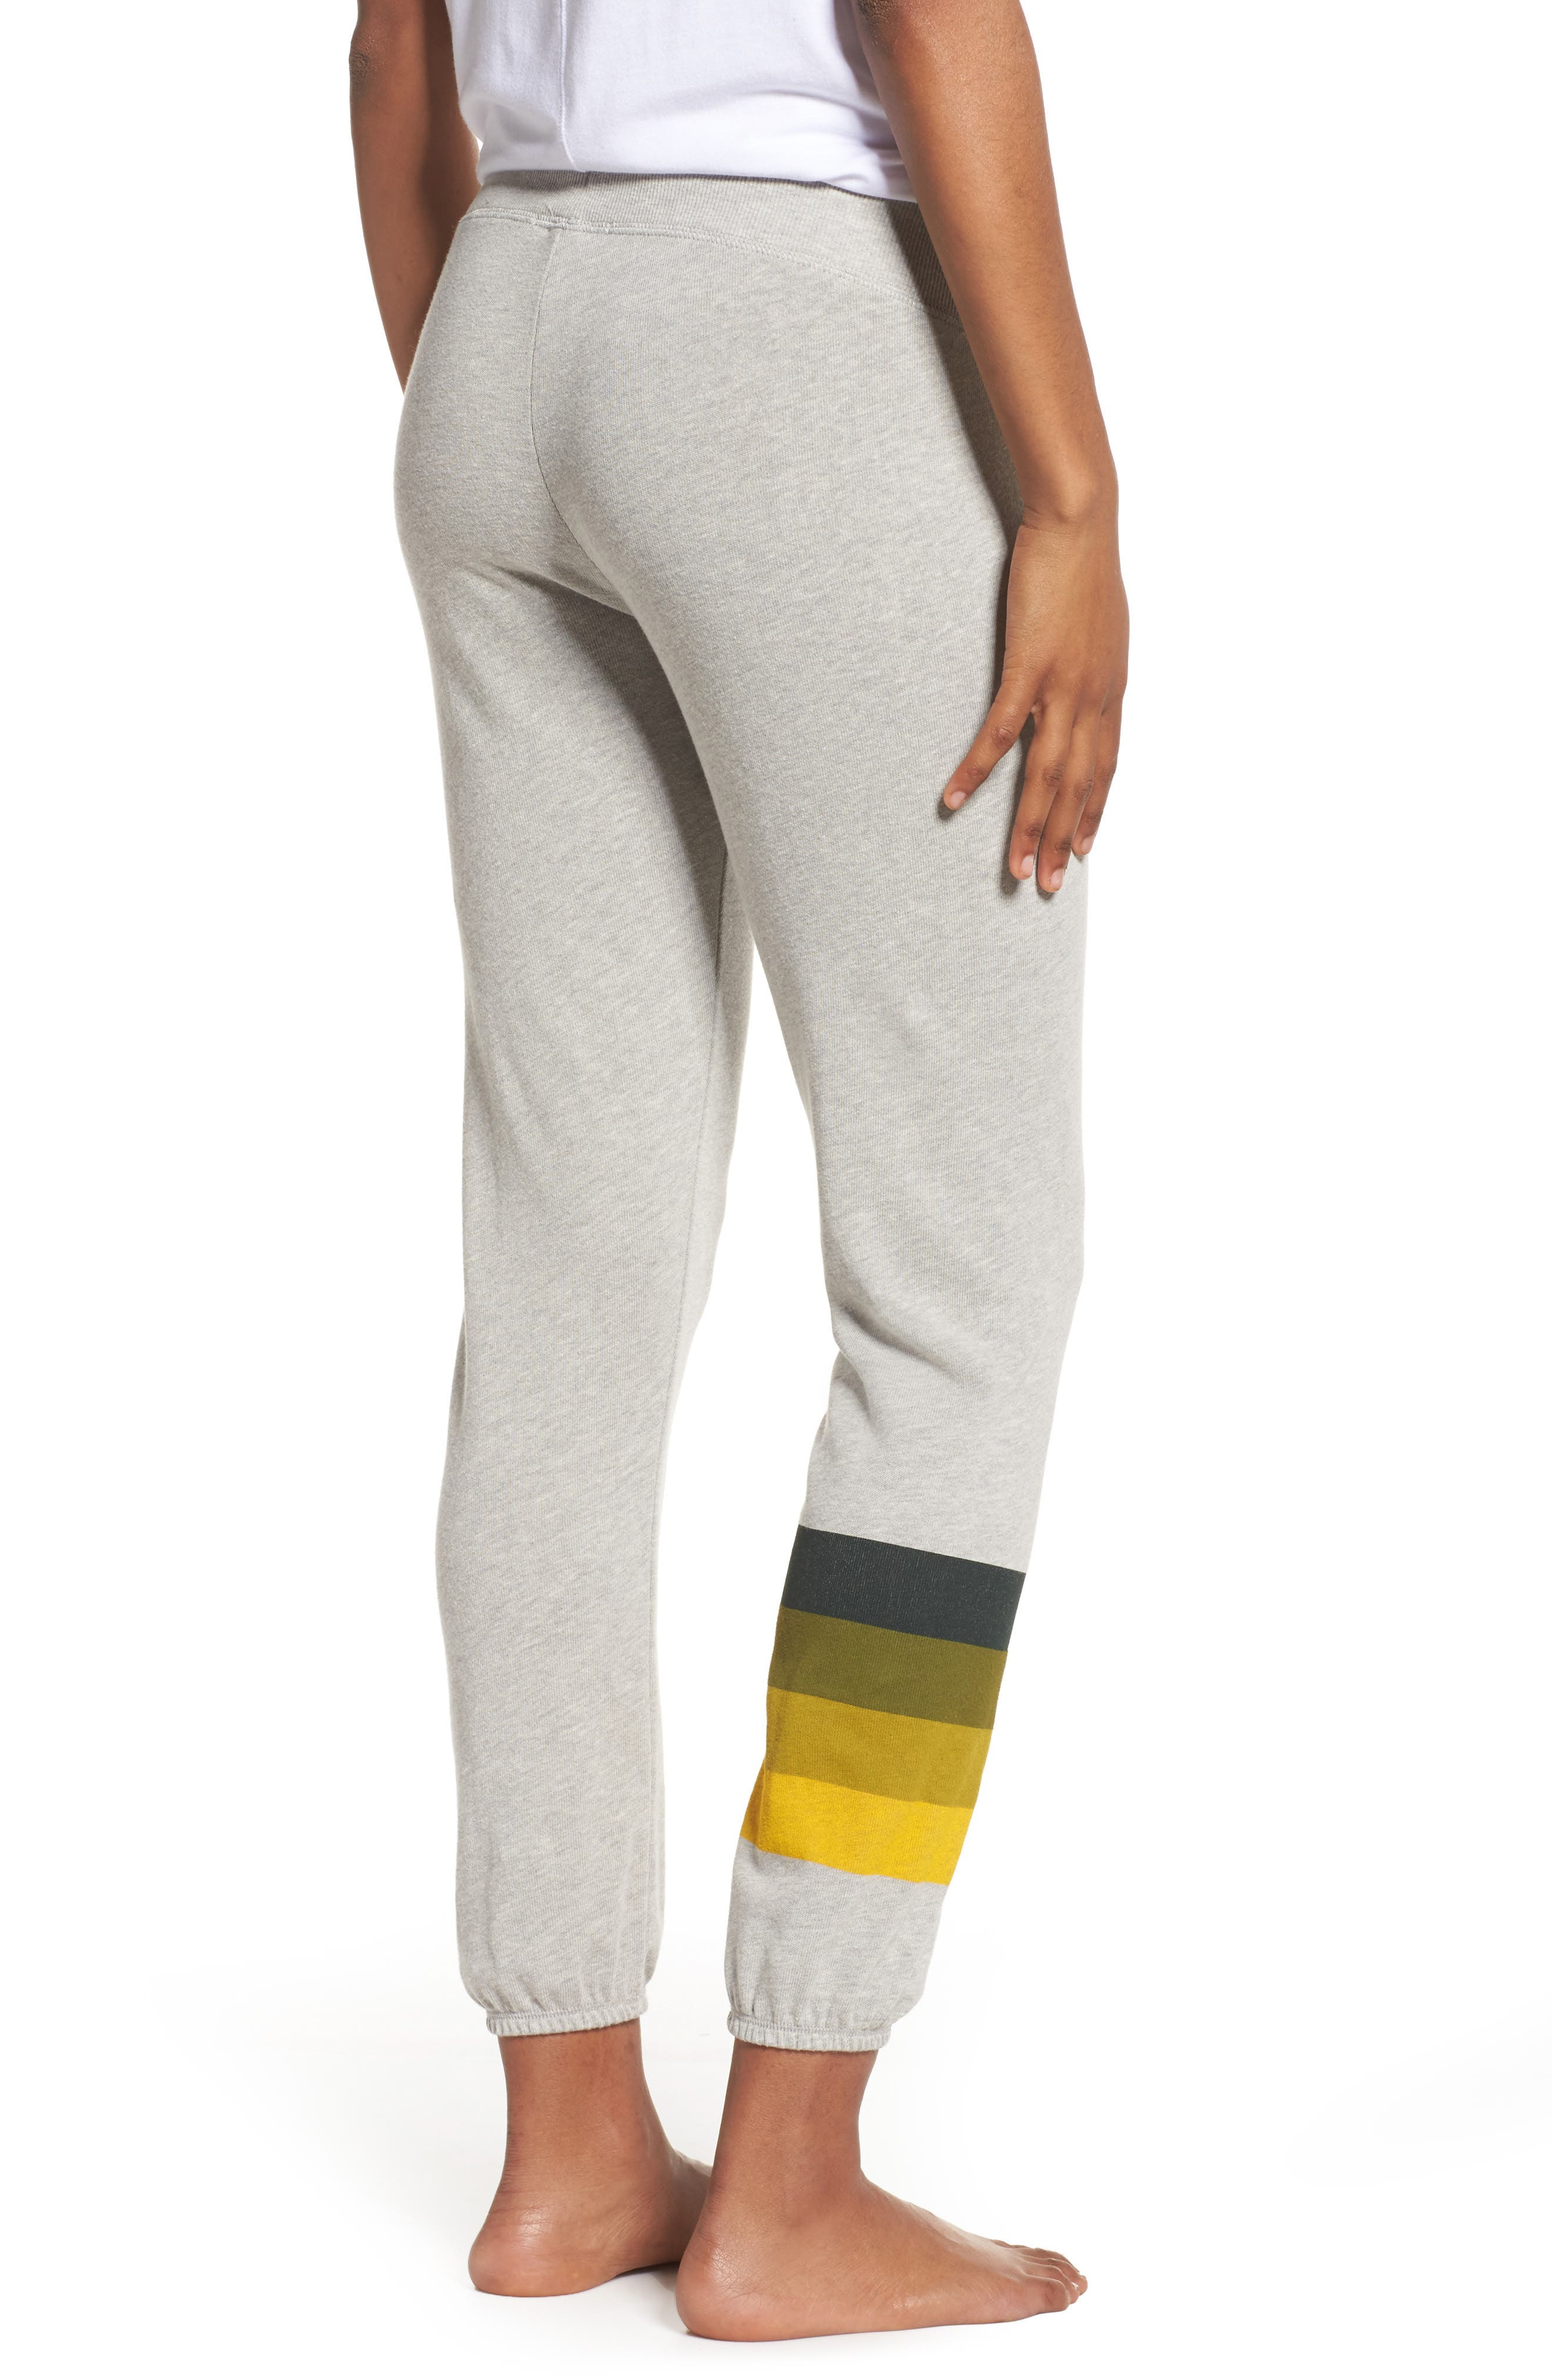 NFL Green Bay Packers Hacci Sweatpants,                             Alternate thumbnail 2, color,                             Dove Heather Grey